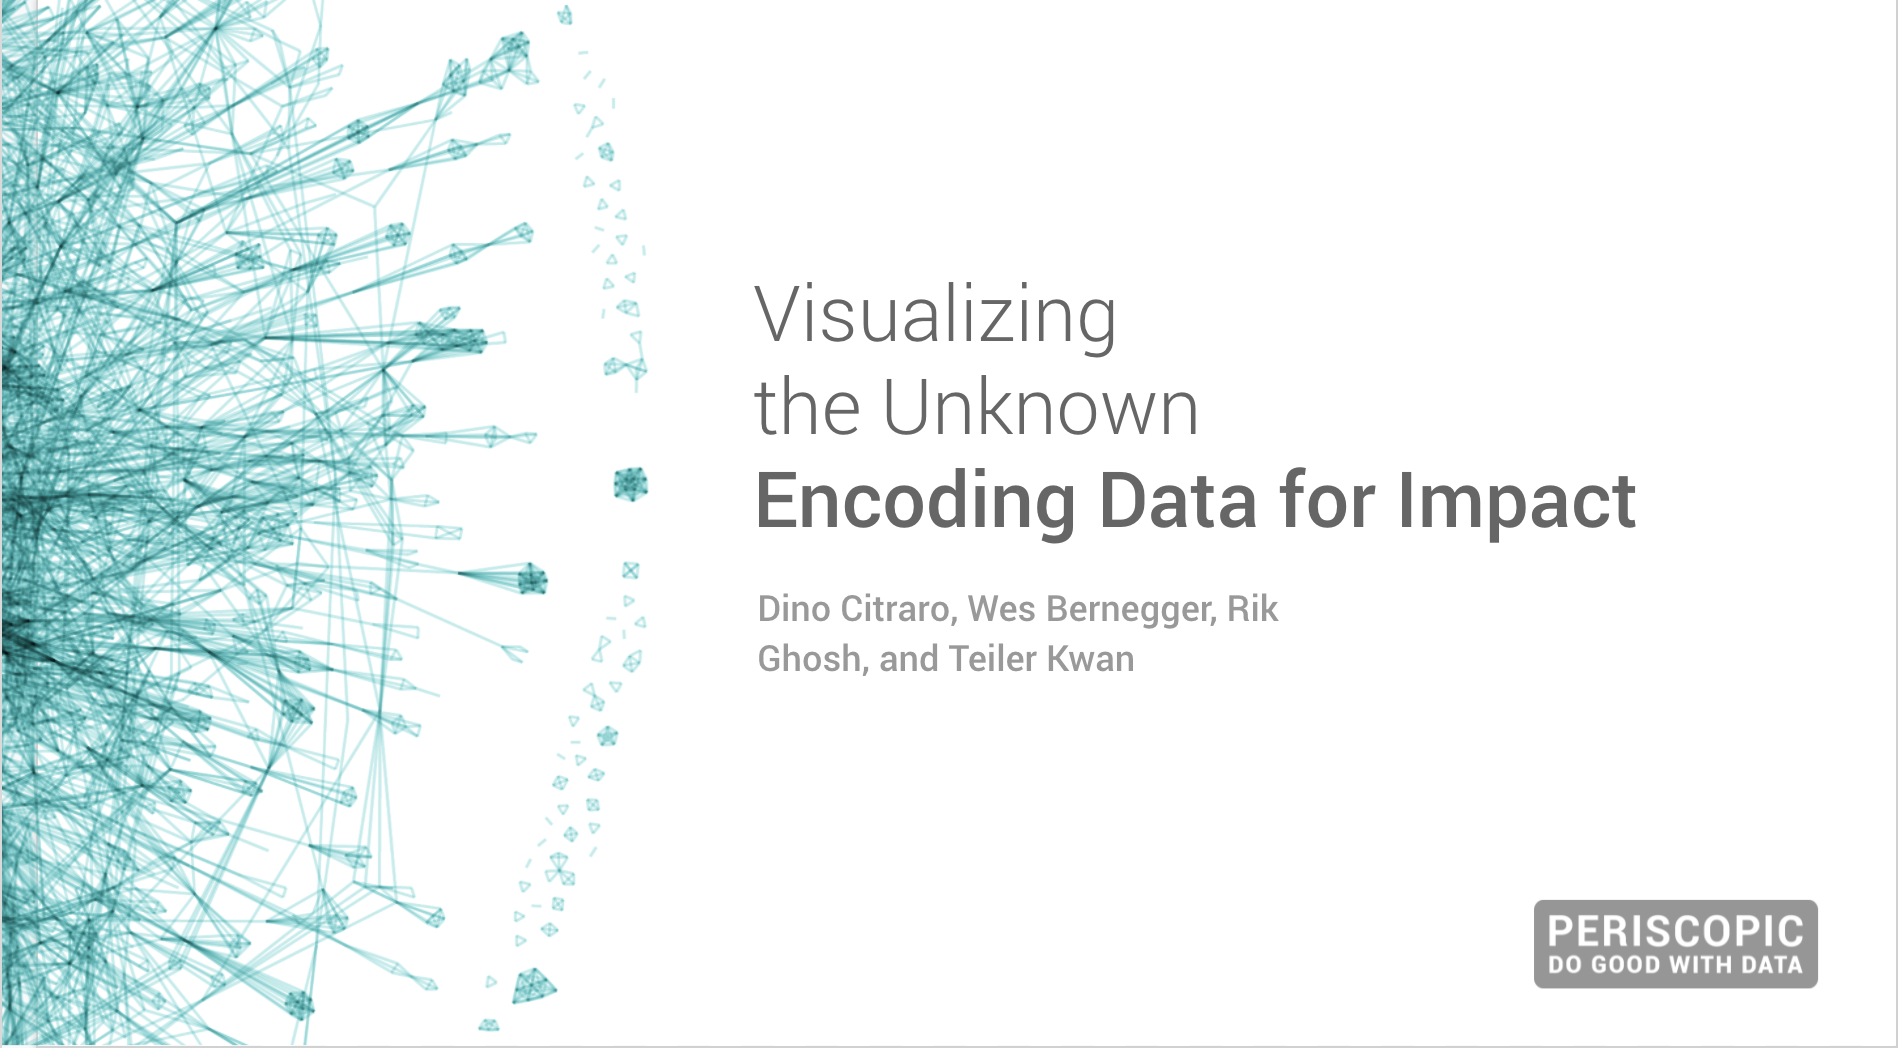 Visualizing the Unknown: Encoding Data for Impact  Periscopic